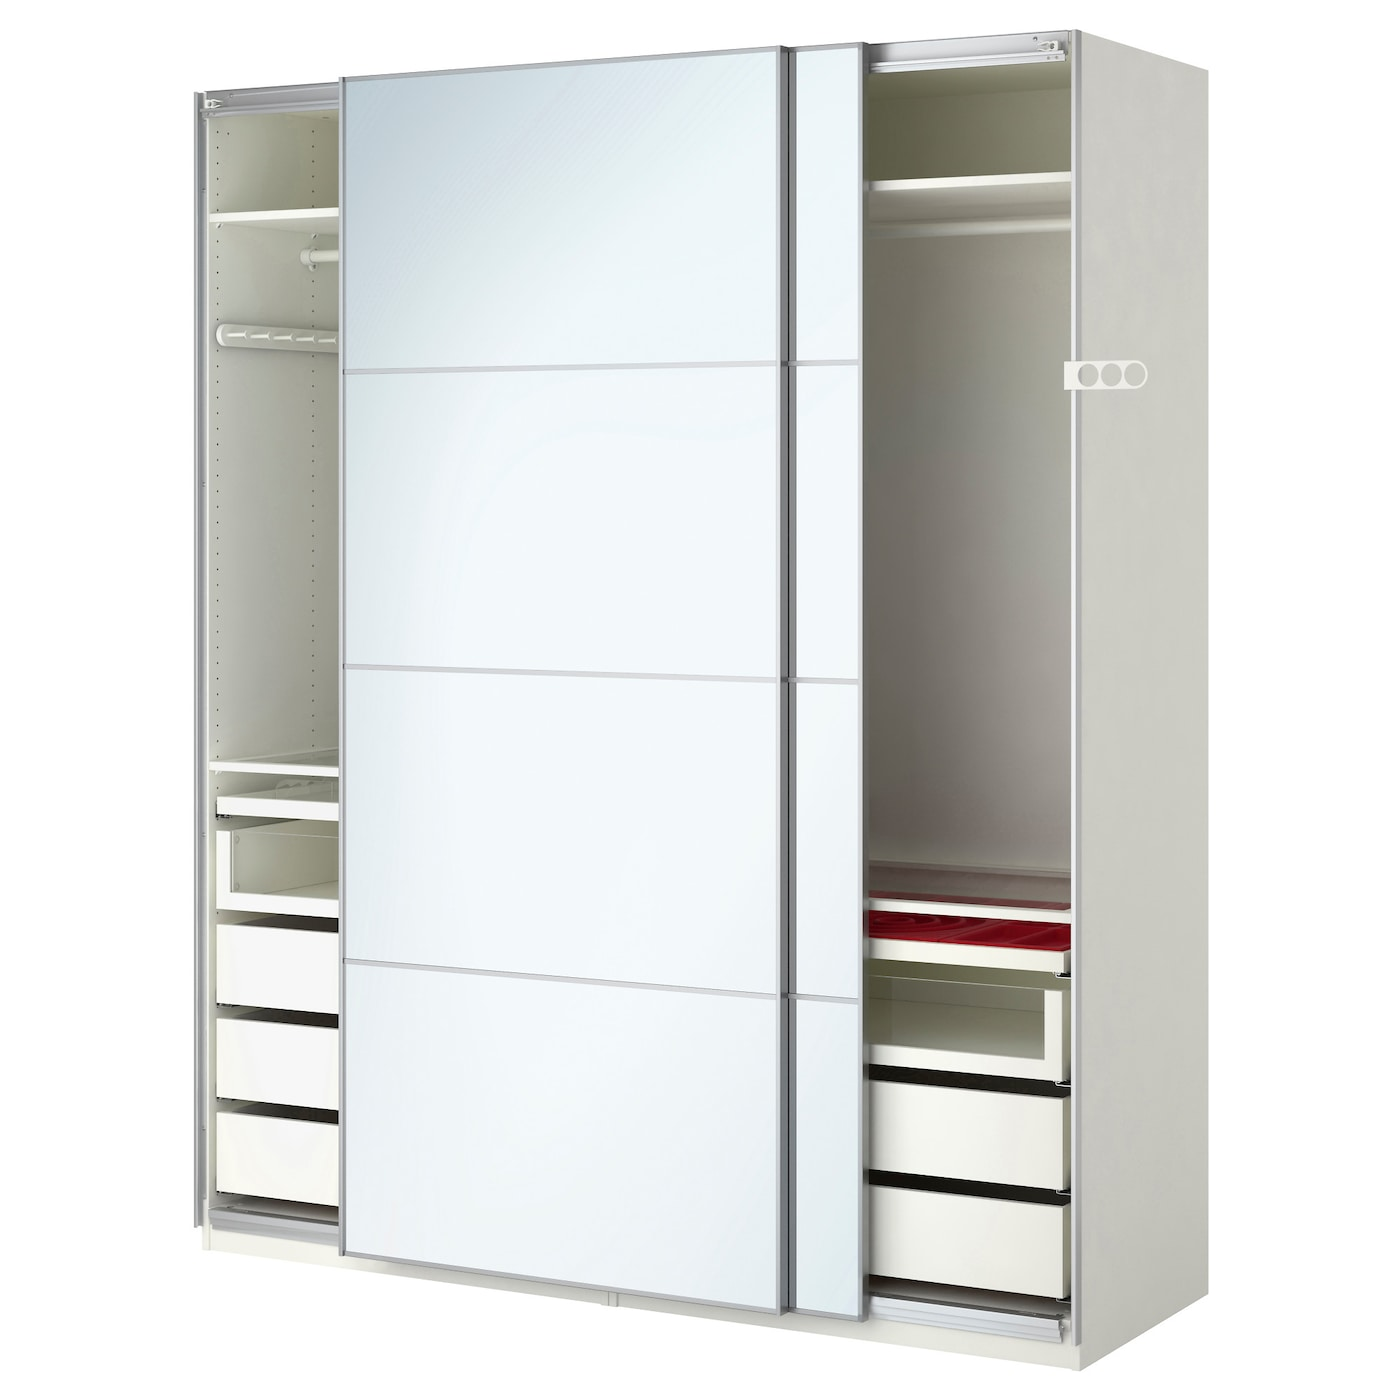 Pax wardrobe white auli mirror glass 200x66x236 cm ikea for Miroir 150x80